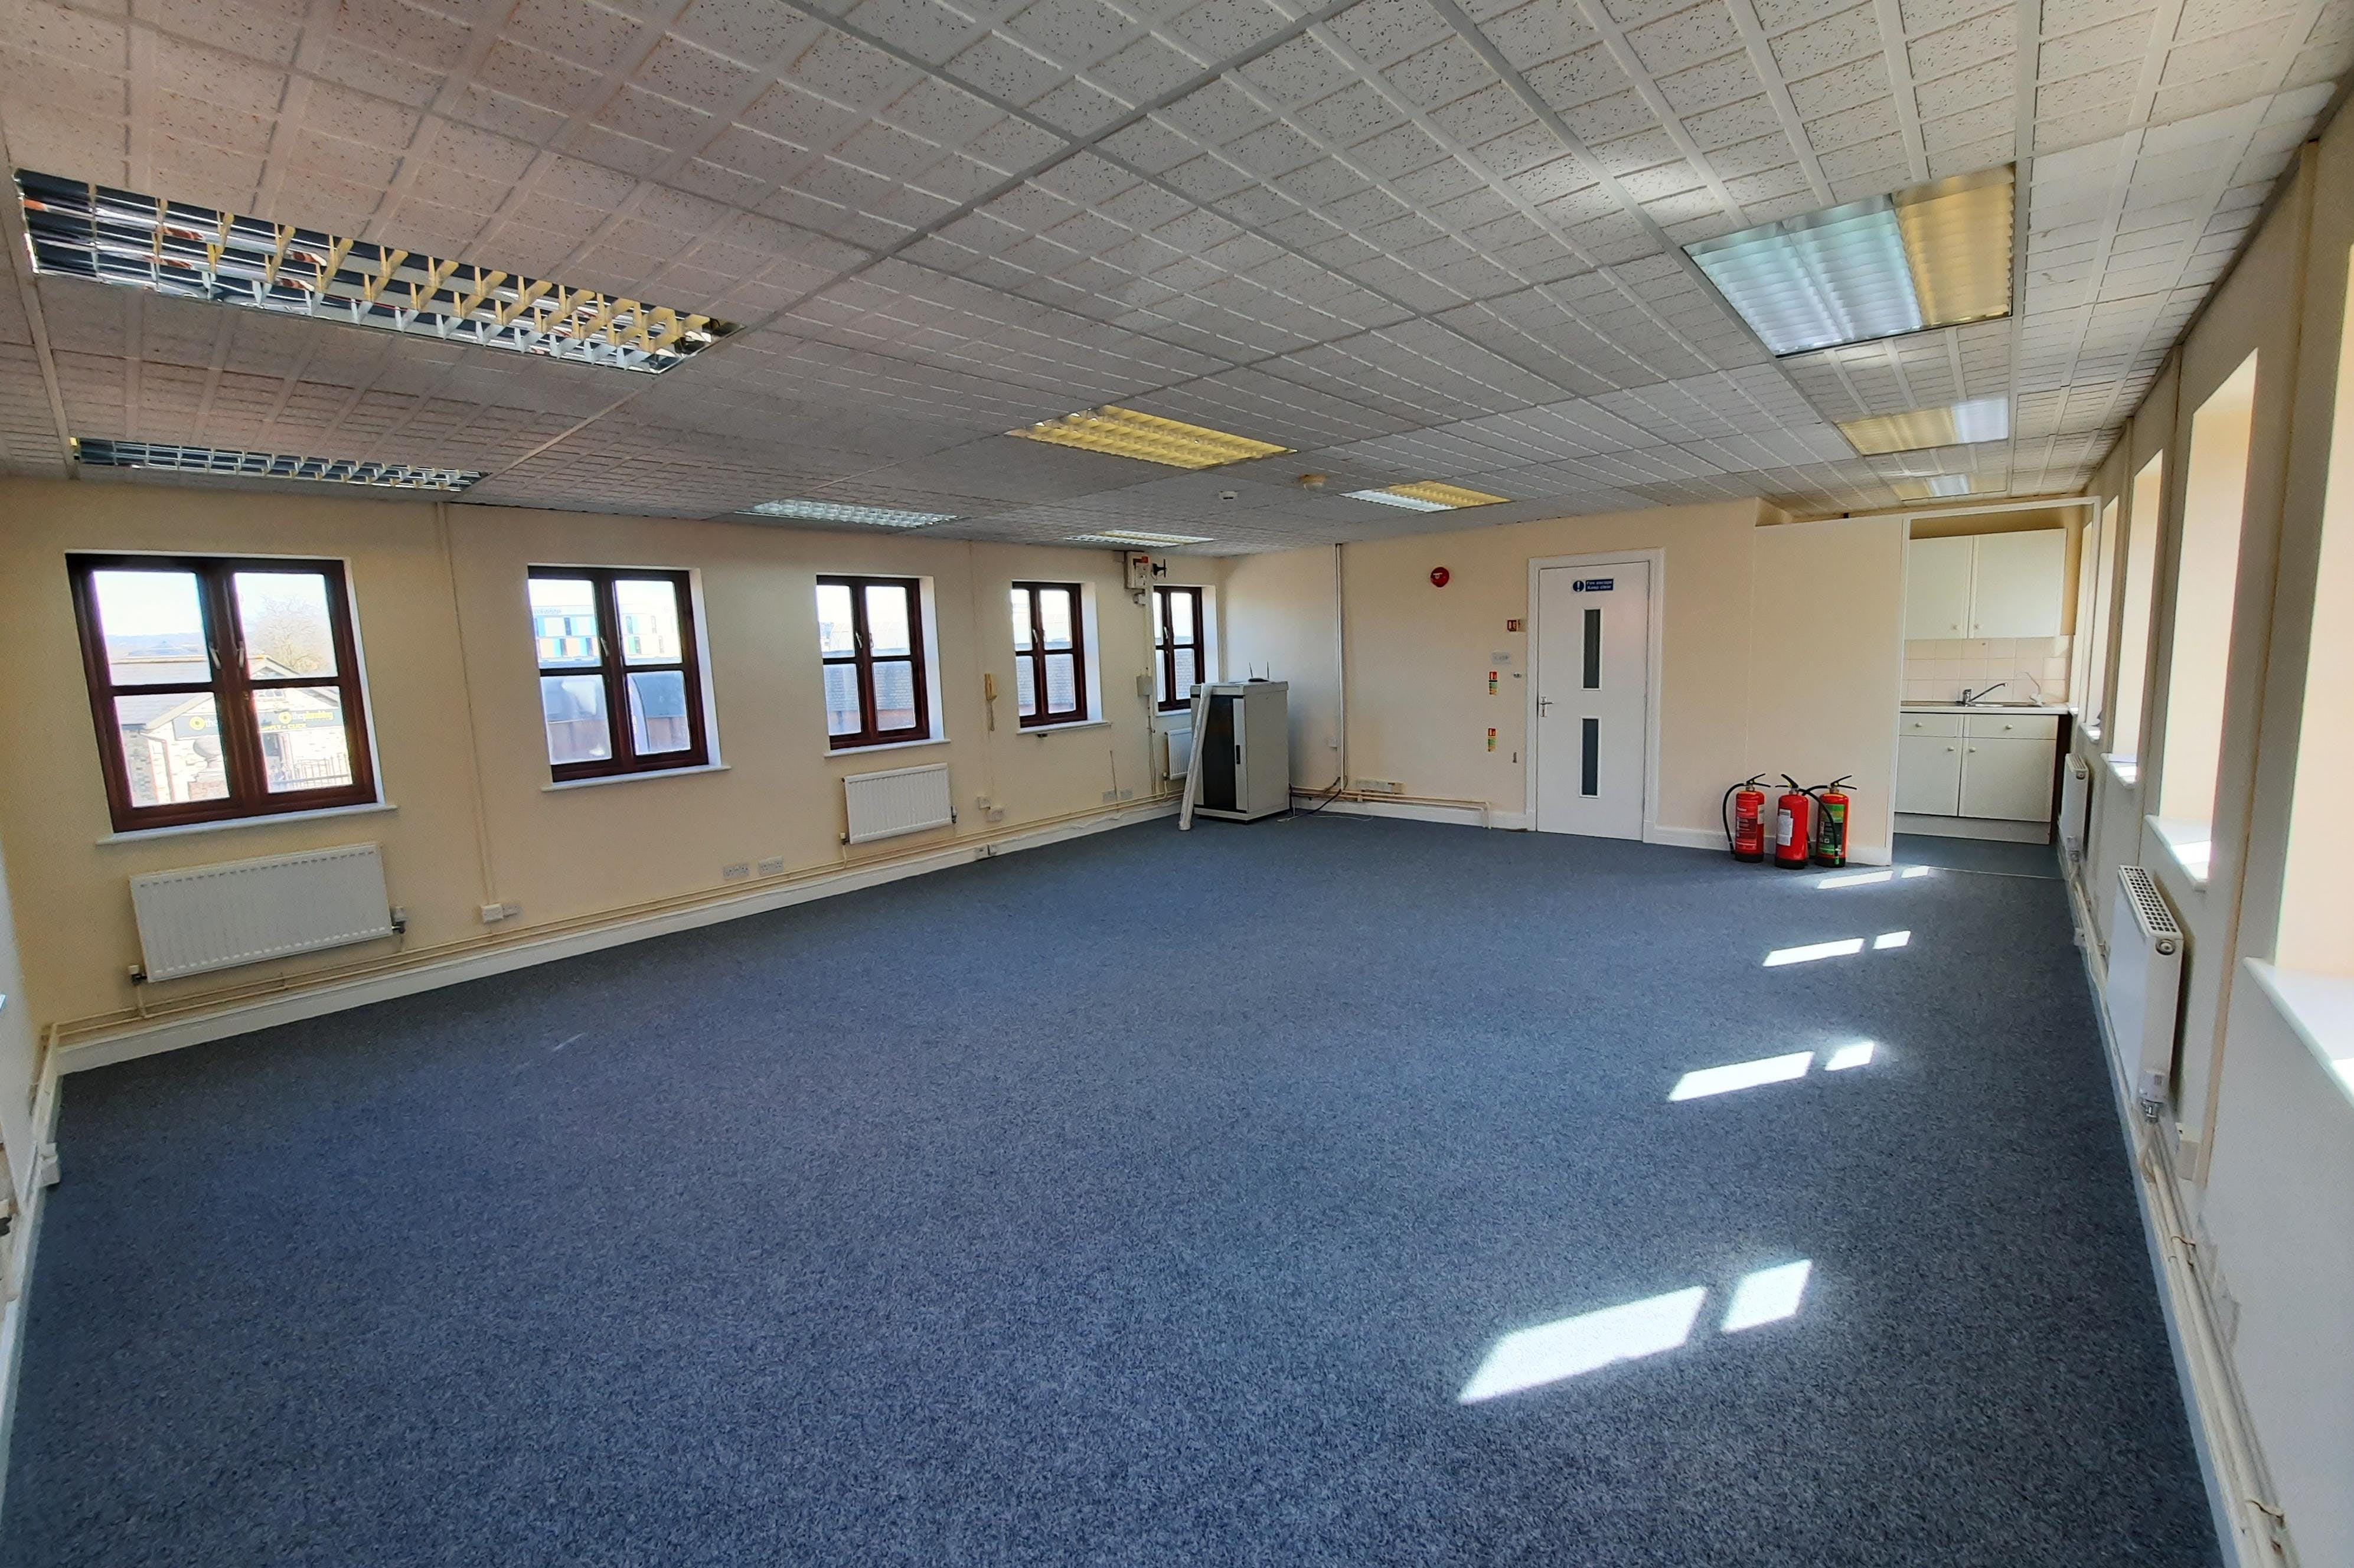 1A London Road, Maidstone, Office To Let - 20210330_113525.jpg